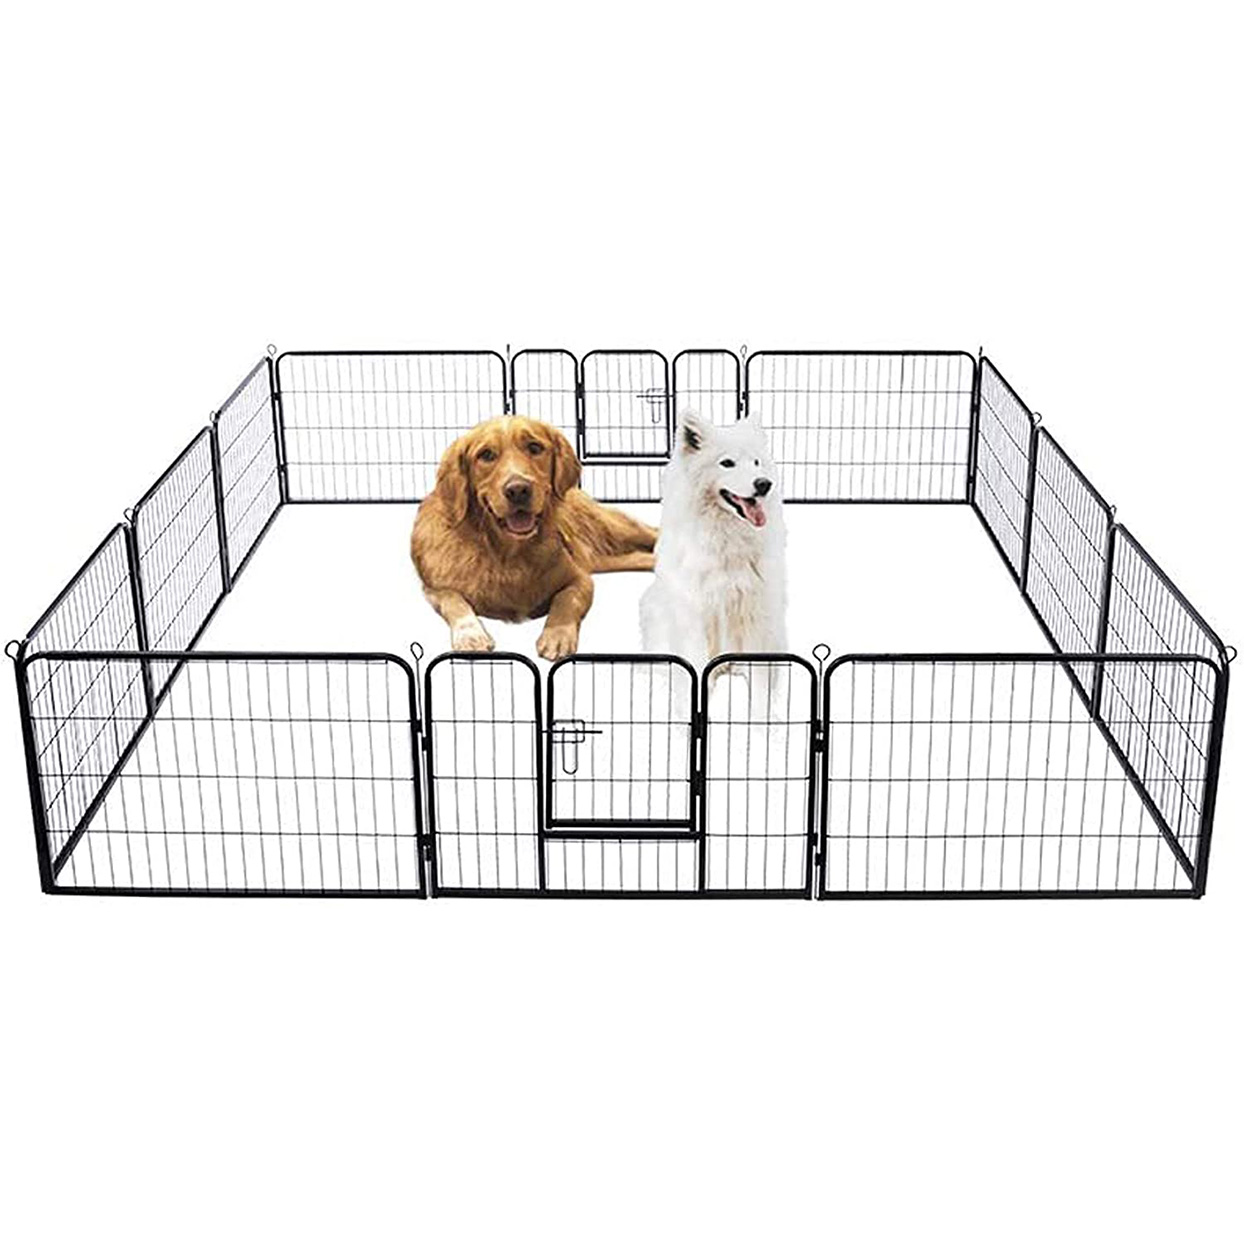 VIVOHOME Heavy Duty Foldable Metal Indoor Outdoor Exercise Pet Fence on a white background